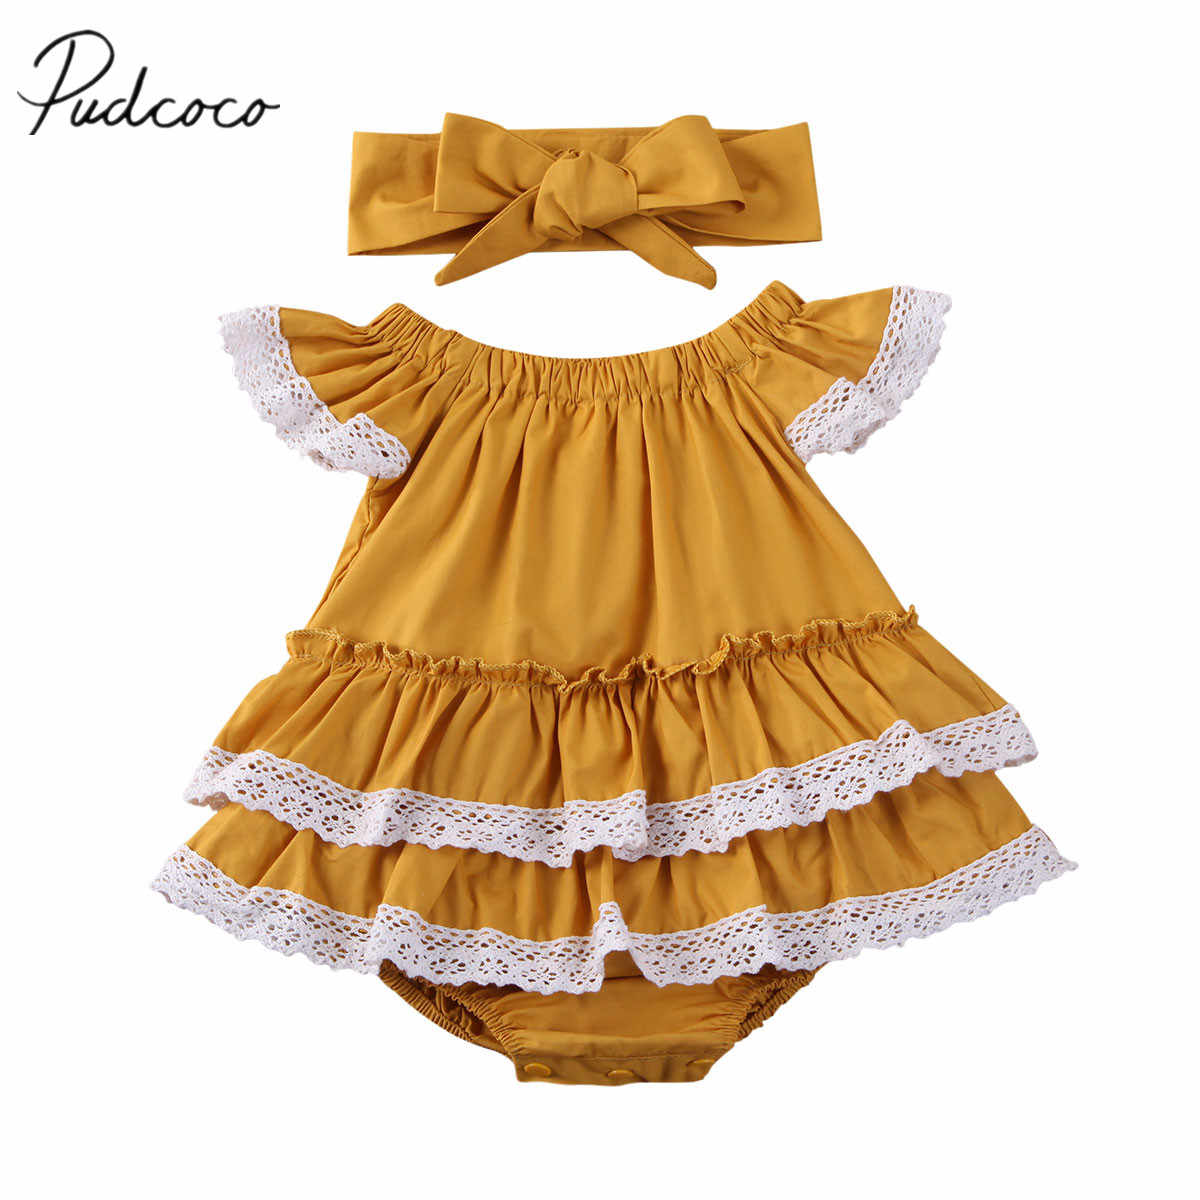 2020 Baby Summer Clothing Infant Baby Girl Kid Lace Bodysuit Ruffled Solid Jumpsuit Top + Headband Clothes Set